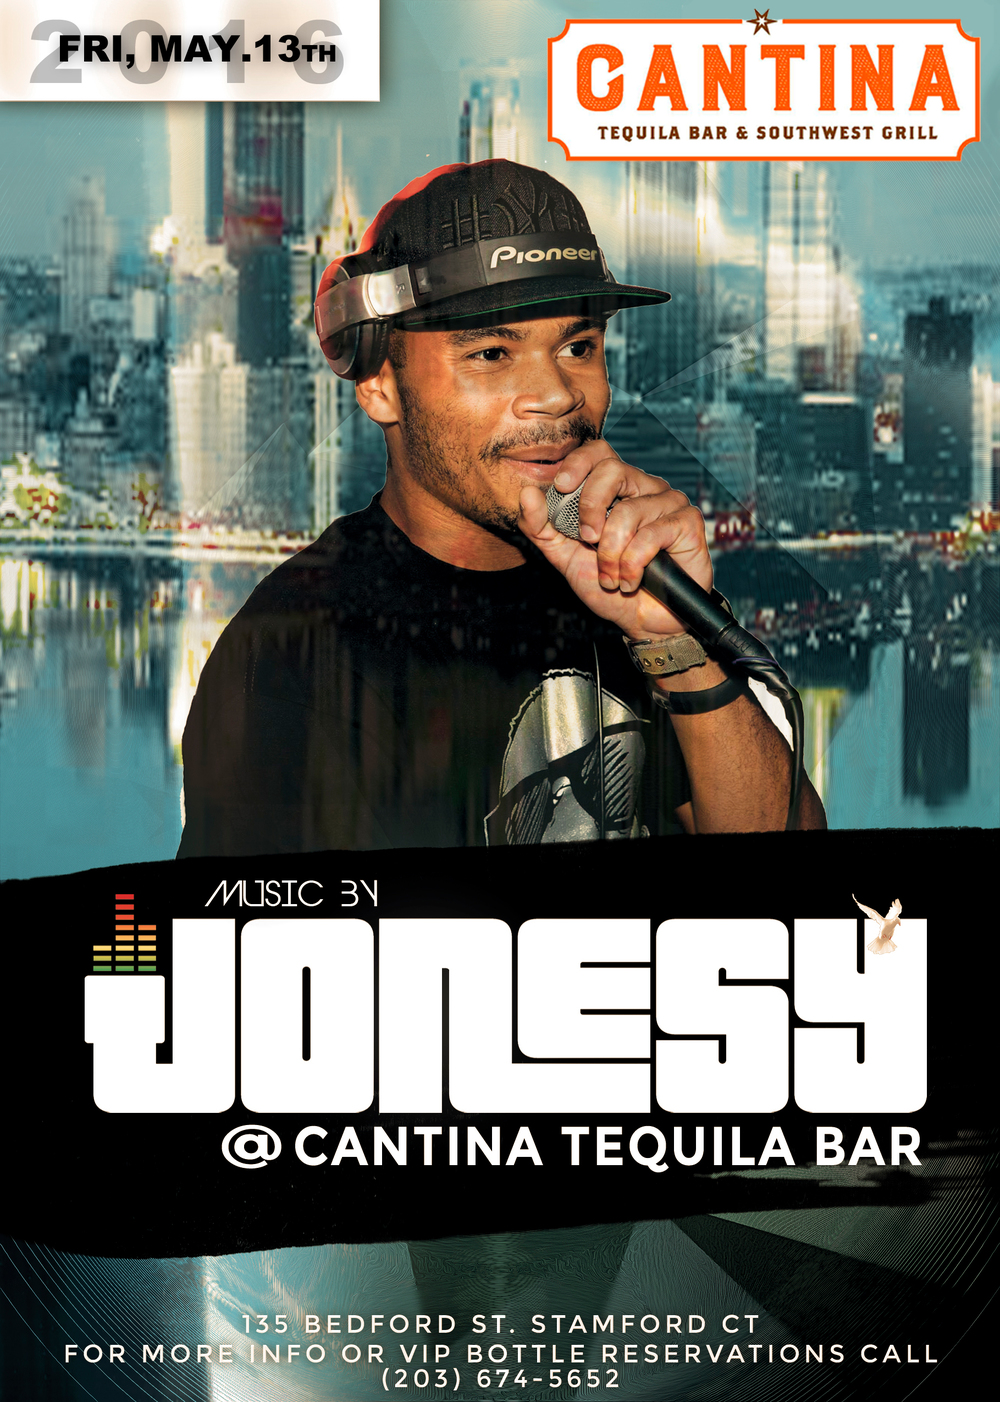 FRIDAY, MAY 13TH JOIN US AT CANTINA TEQUILA BAR & SOUTHWEST GRILL FOR MUSIC BY YOURS TRULY 9PM-CLOSE!  DELICIOUS FOOD, TONS OF TEQUILA + THE BEST MUSIC IN TOWN.  MEET ME THERE!